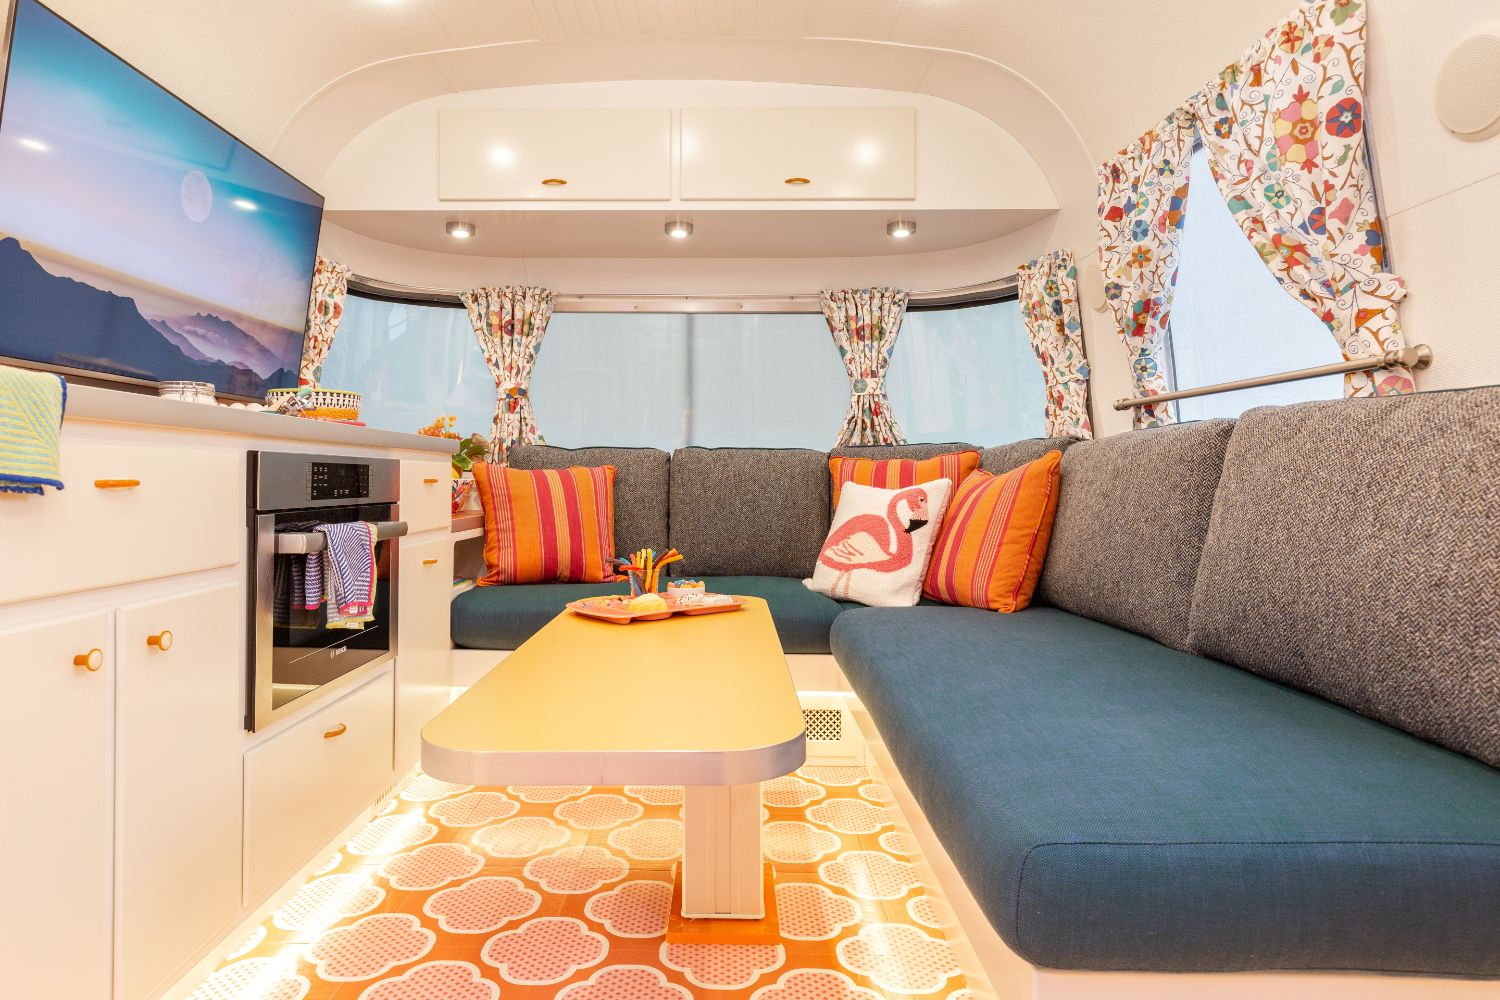 An interior view of a renovated Airstream travel trailer  has a teal blue bench seat, yellow table, and colorful print window coverings.